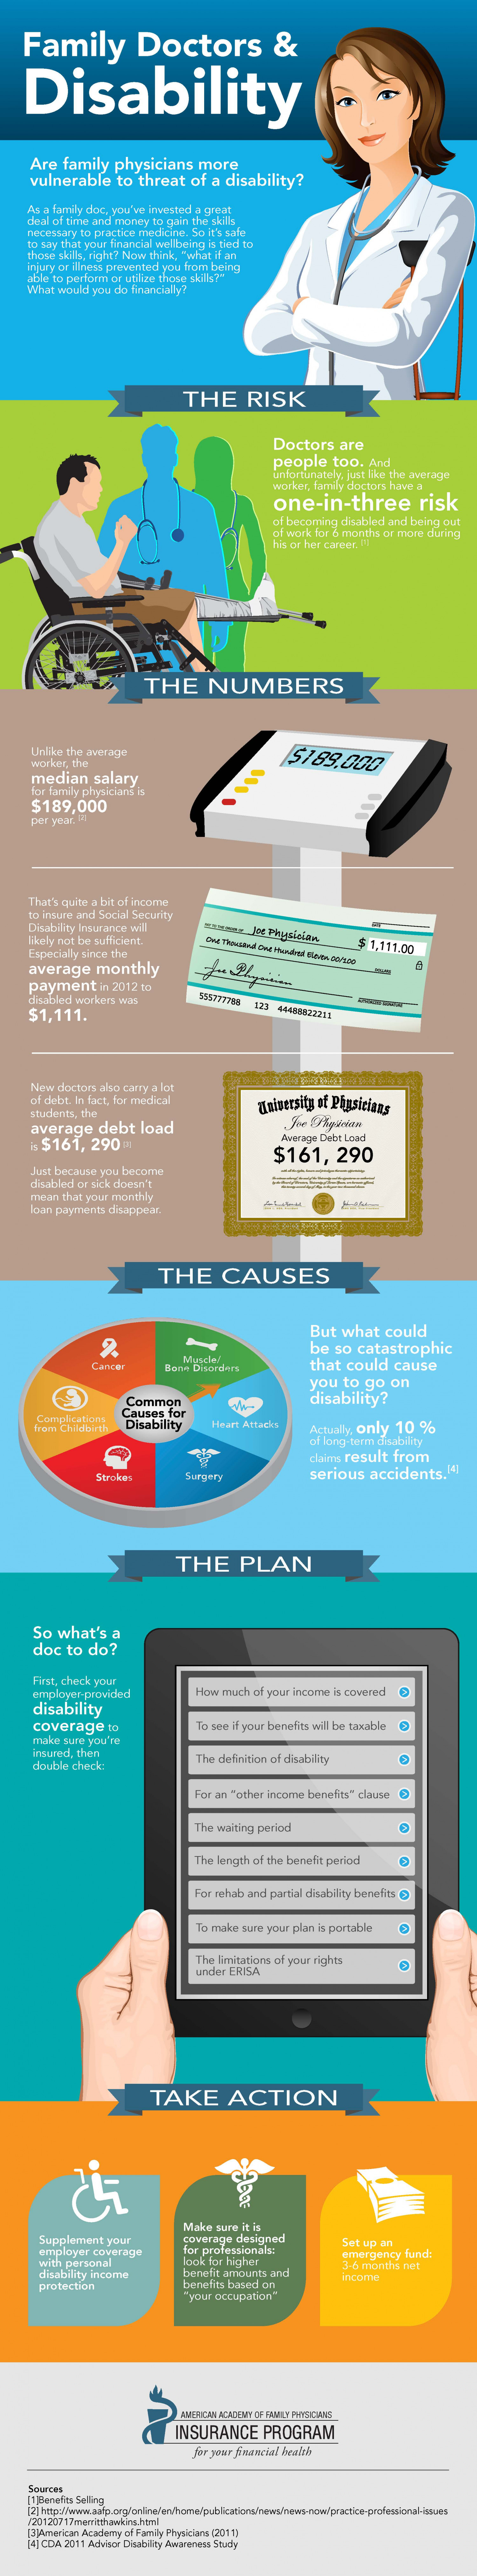 Family Doctors & Disability Infographic